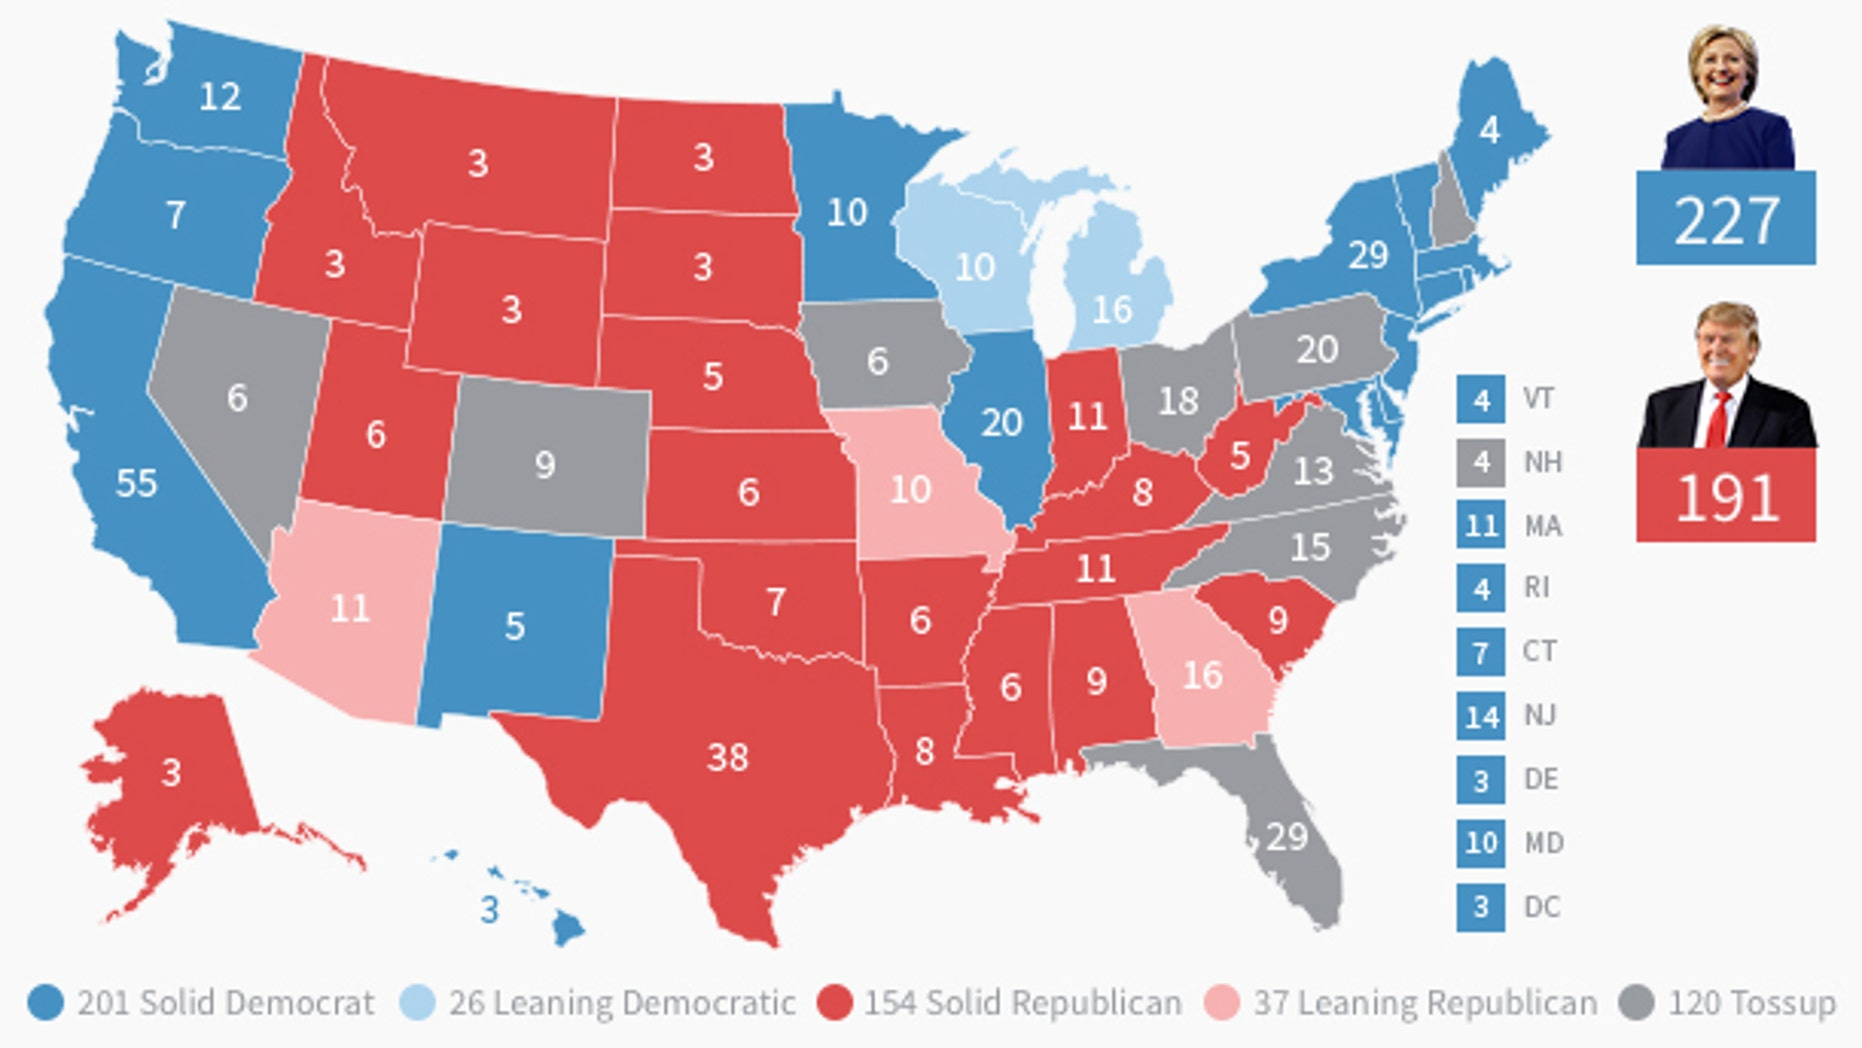 Fox News Electoral Map: Clinton has 2016 edge, but many toss-ups in ...